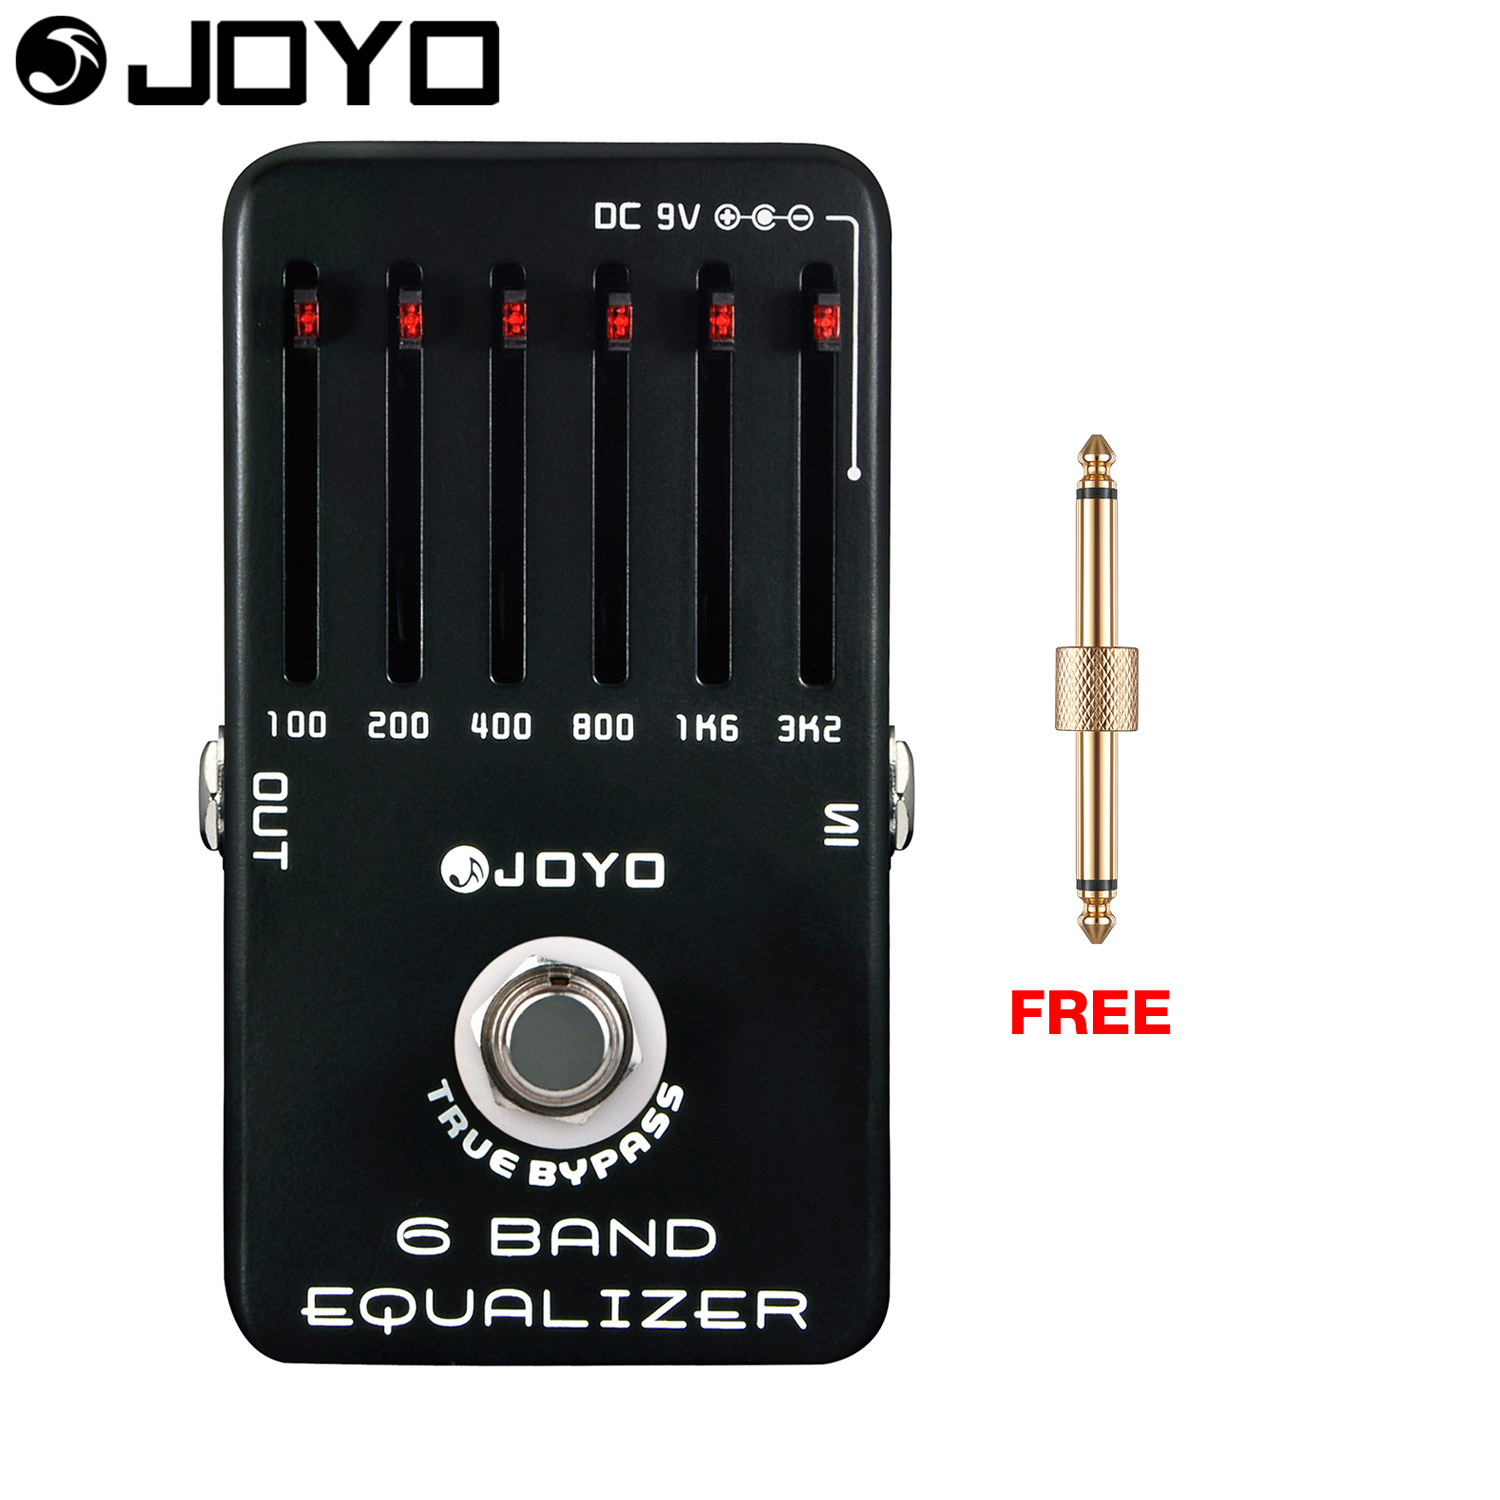 JOYO 6 Band Equalizer Electric Guitar Effect Pedal LED Power Indicator True Bypass JF-11 with Free Connector aroma adr 3 dumbler amp simulator guitar effect pedal mini single pedals with true bypass aluminium alloy guitar accessories